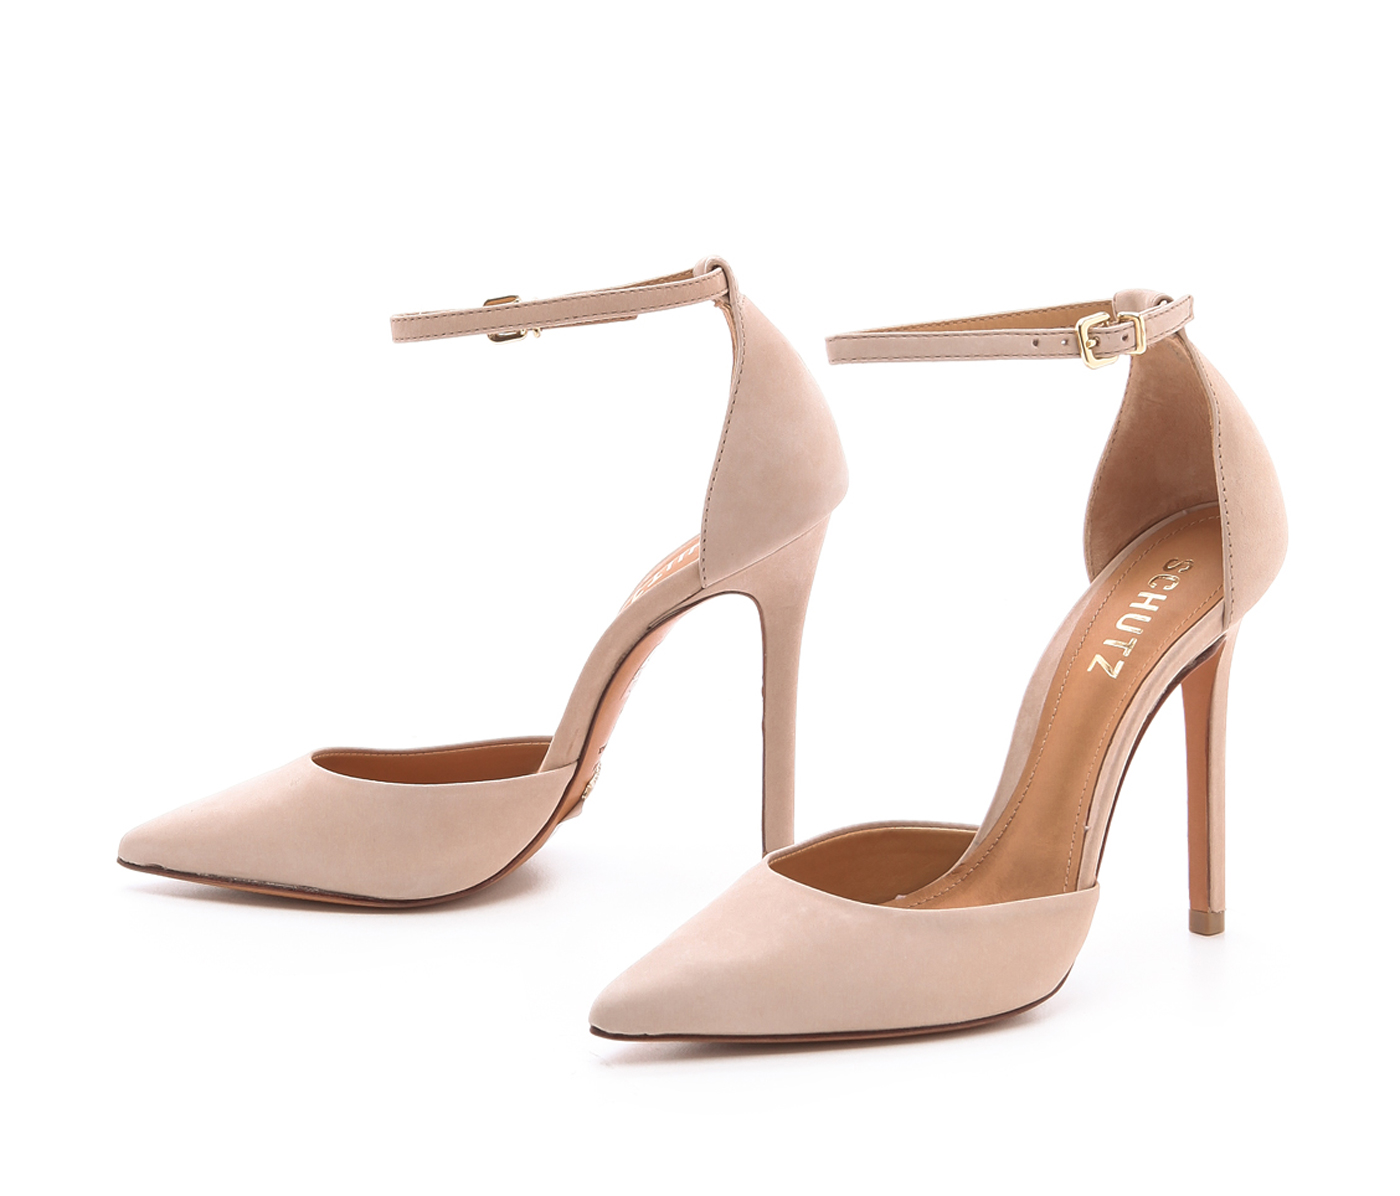 Schutz Irma Oyster Nude Leather Pointed